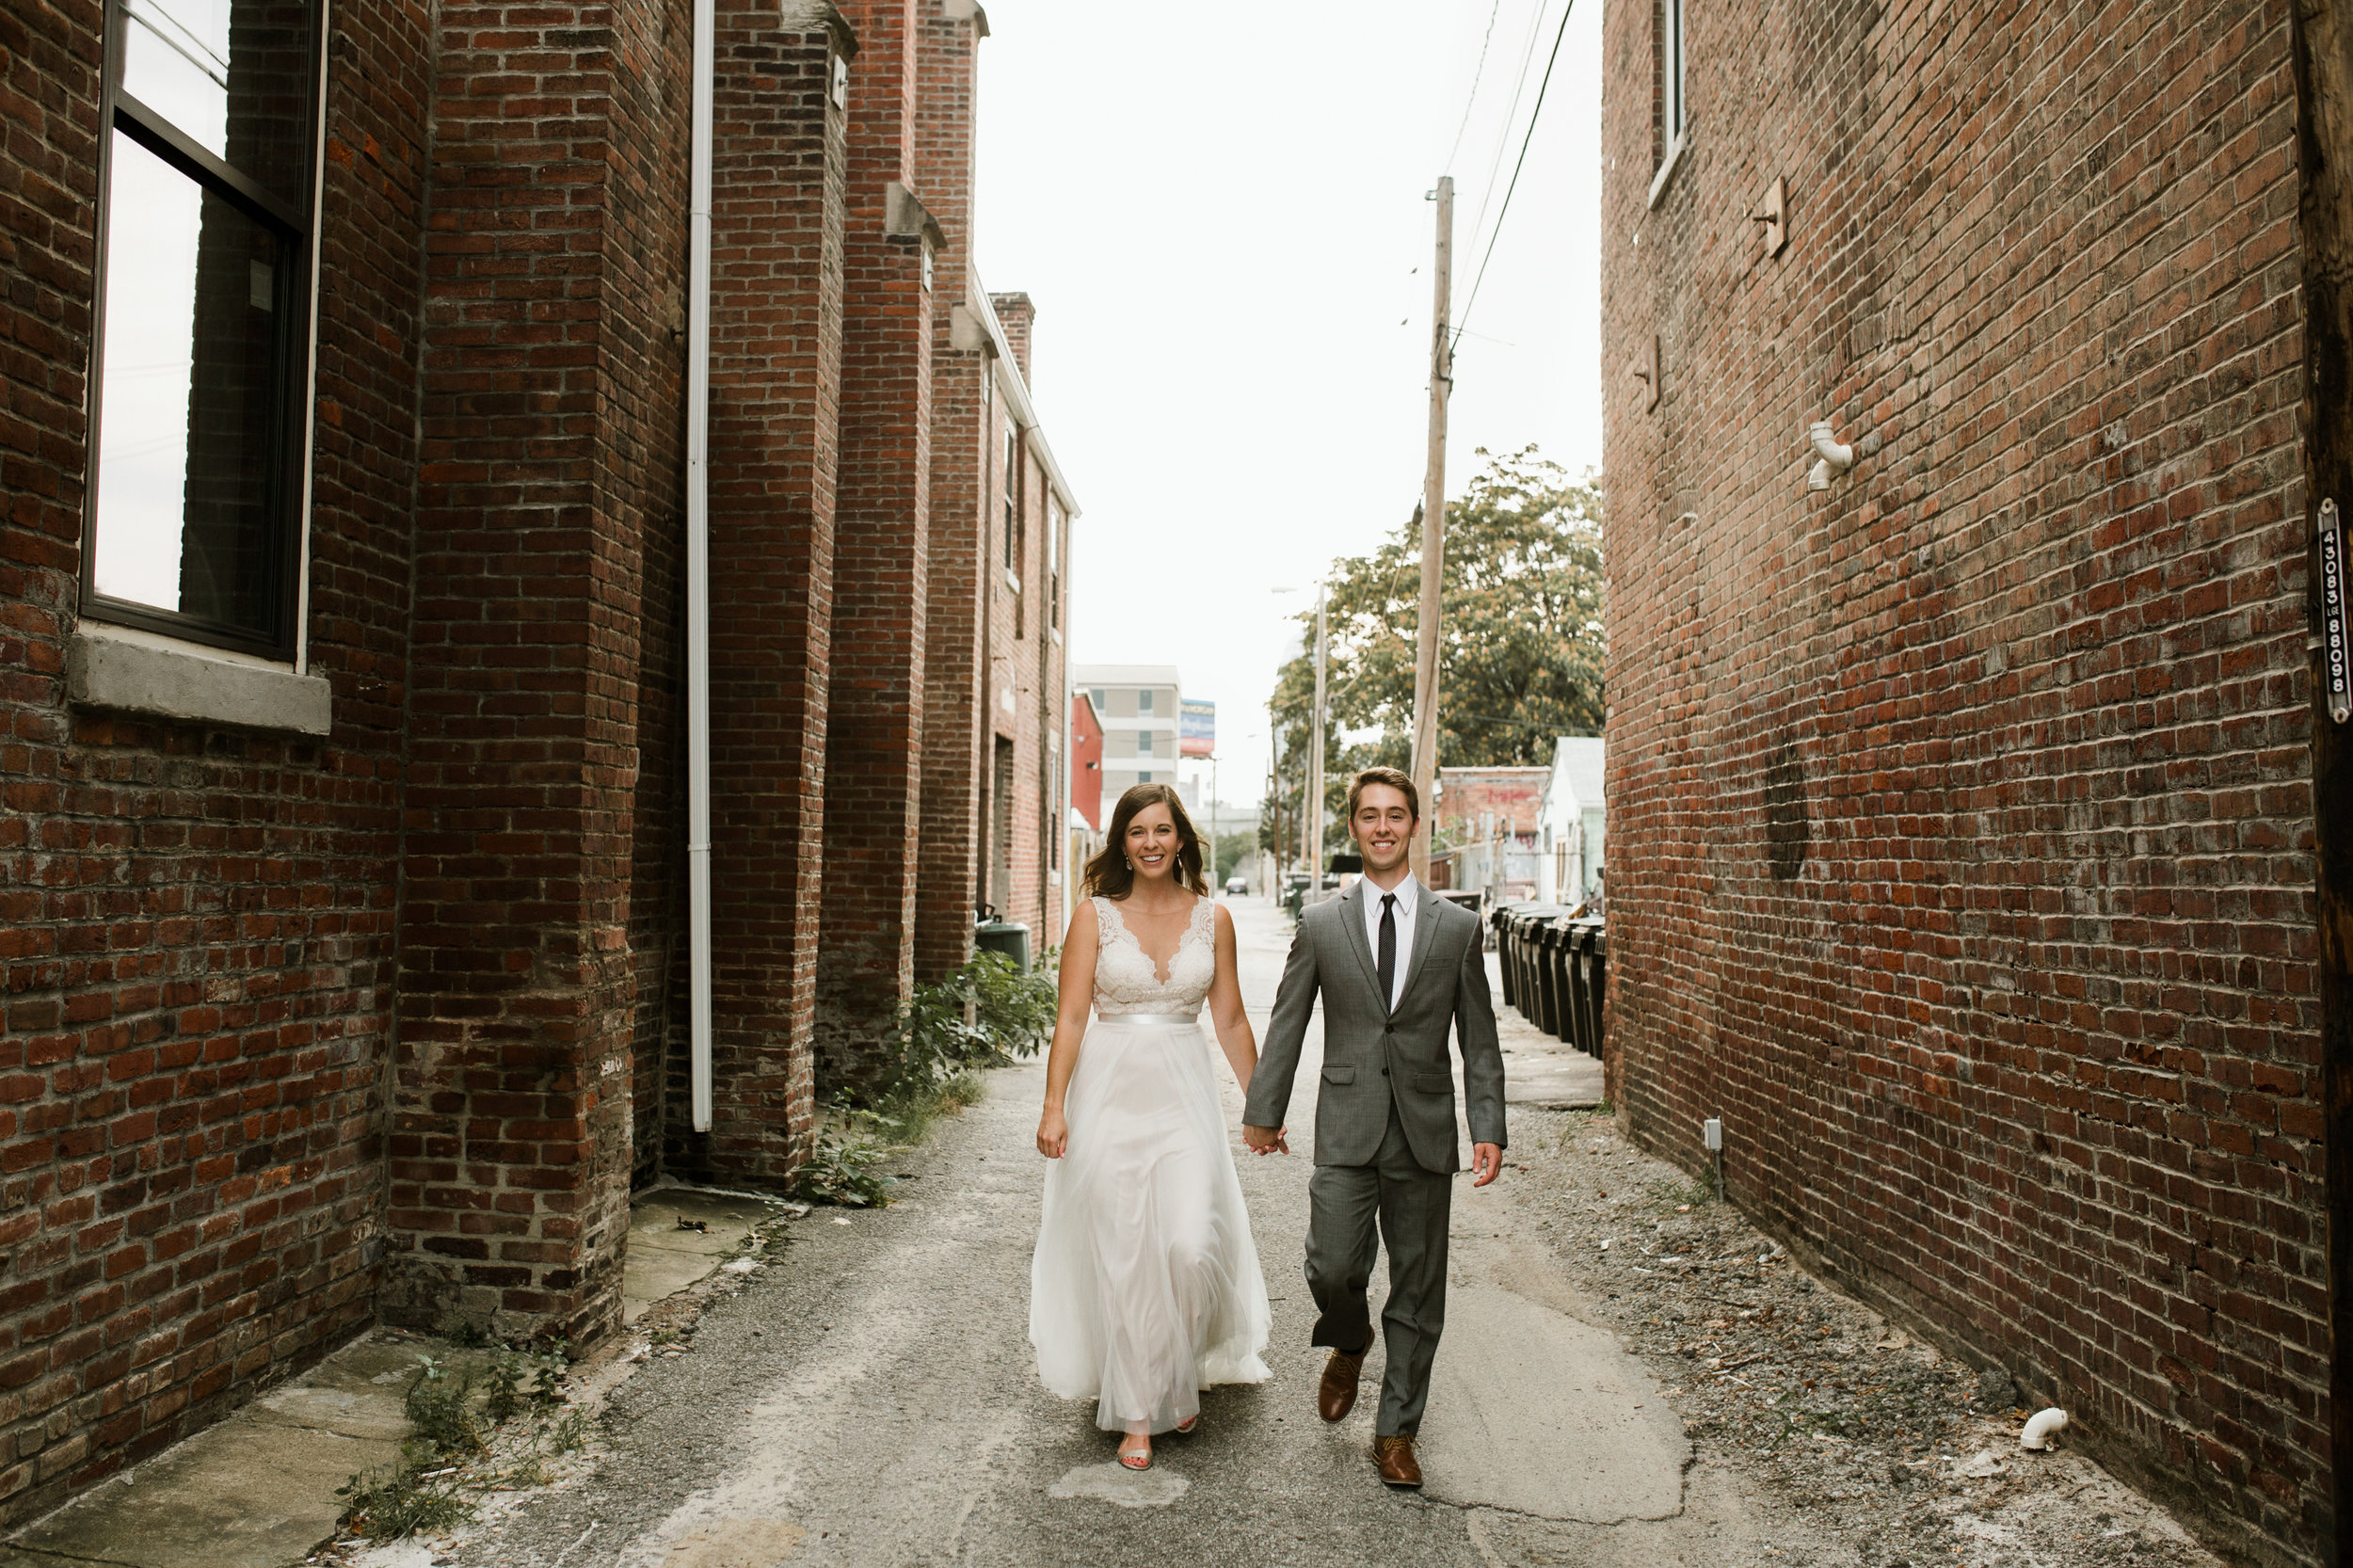 Amanda & Dave Anniversary 2018 Crystal Ludwick Photo Louisville Wedding Photographer Kentucky Wedding Photographer (16 of 43).jpg